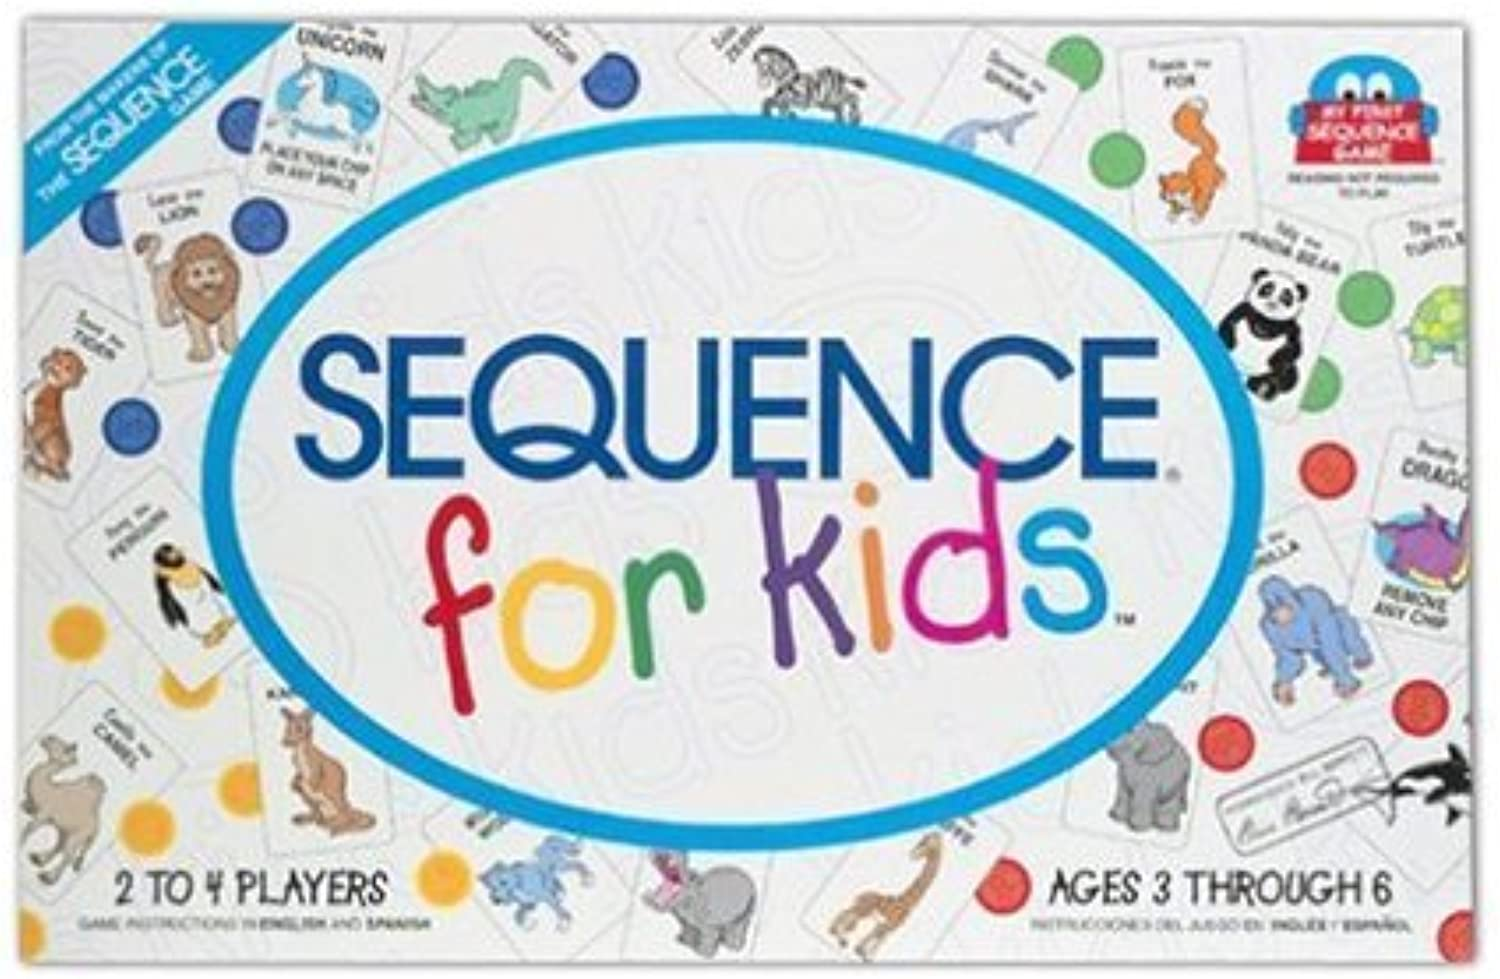 Sequence for Kids by Brybelly